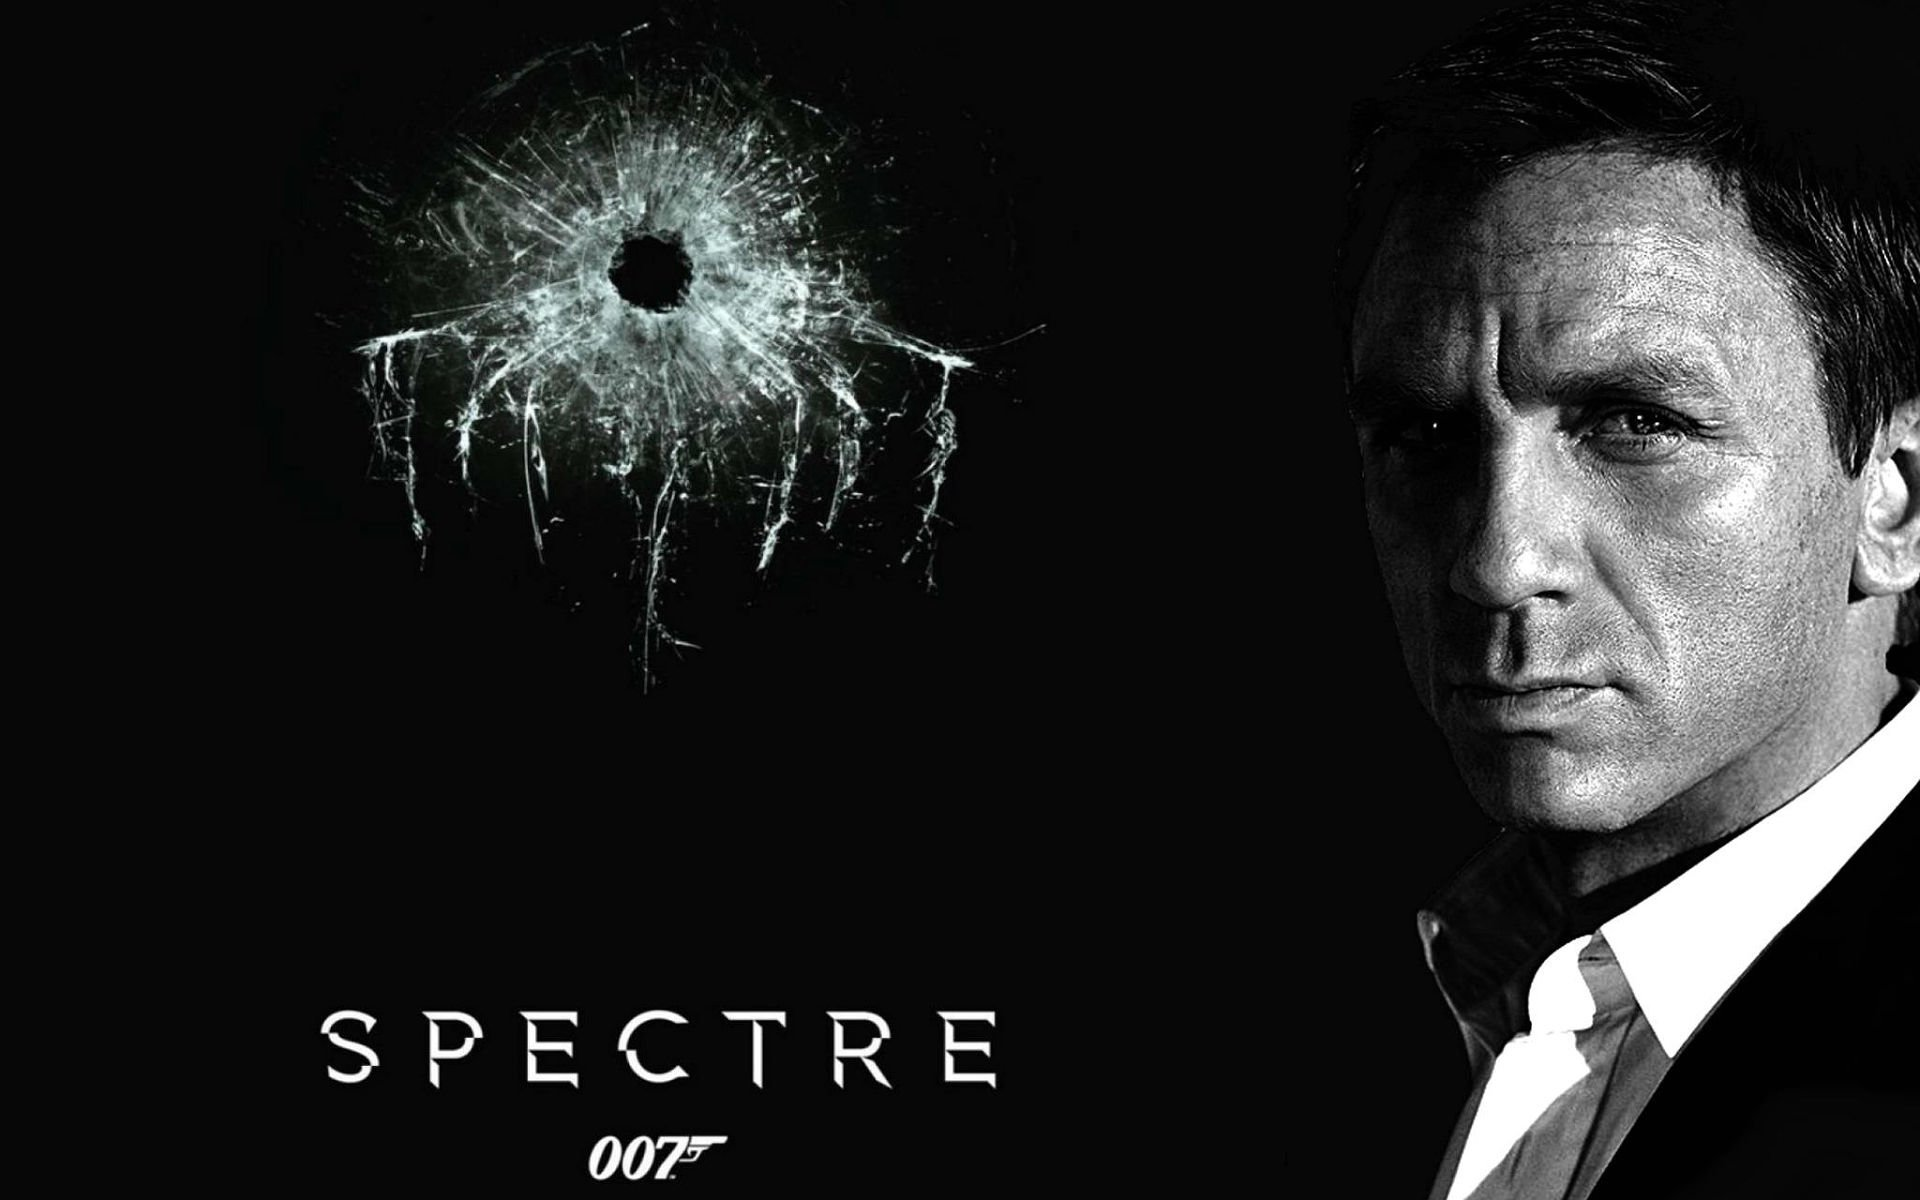 007 Spectre, il nuovo film su James Bond